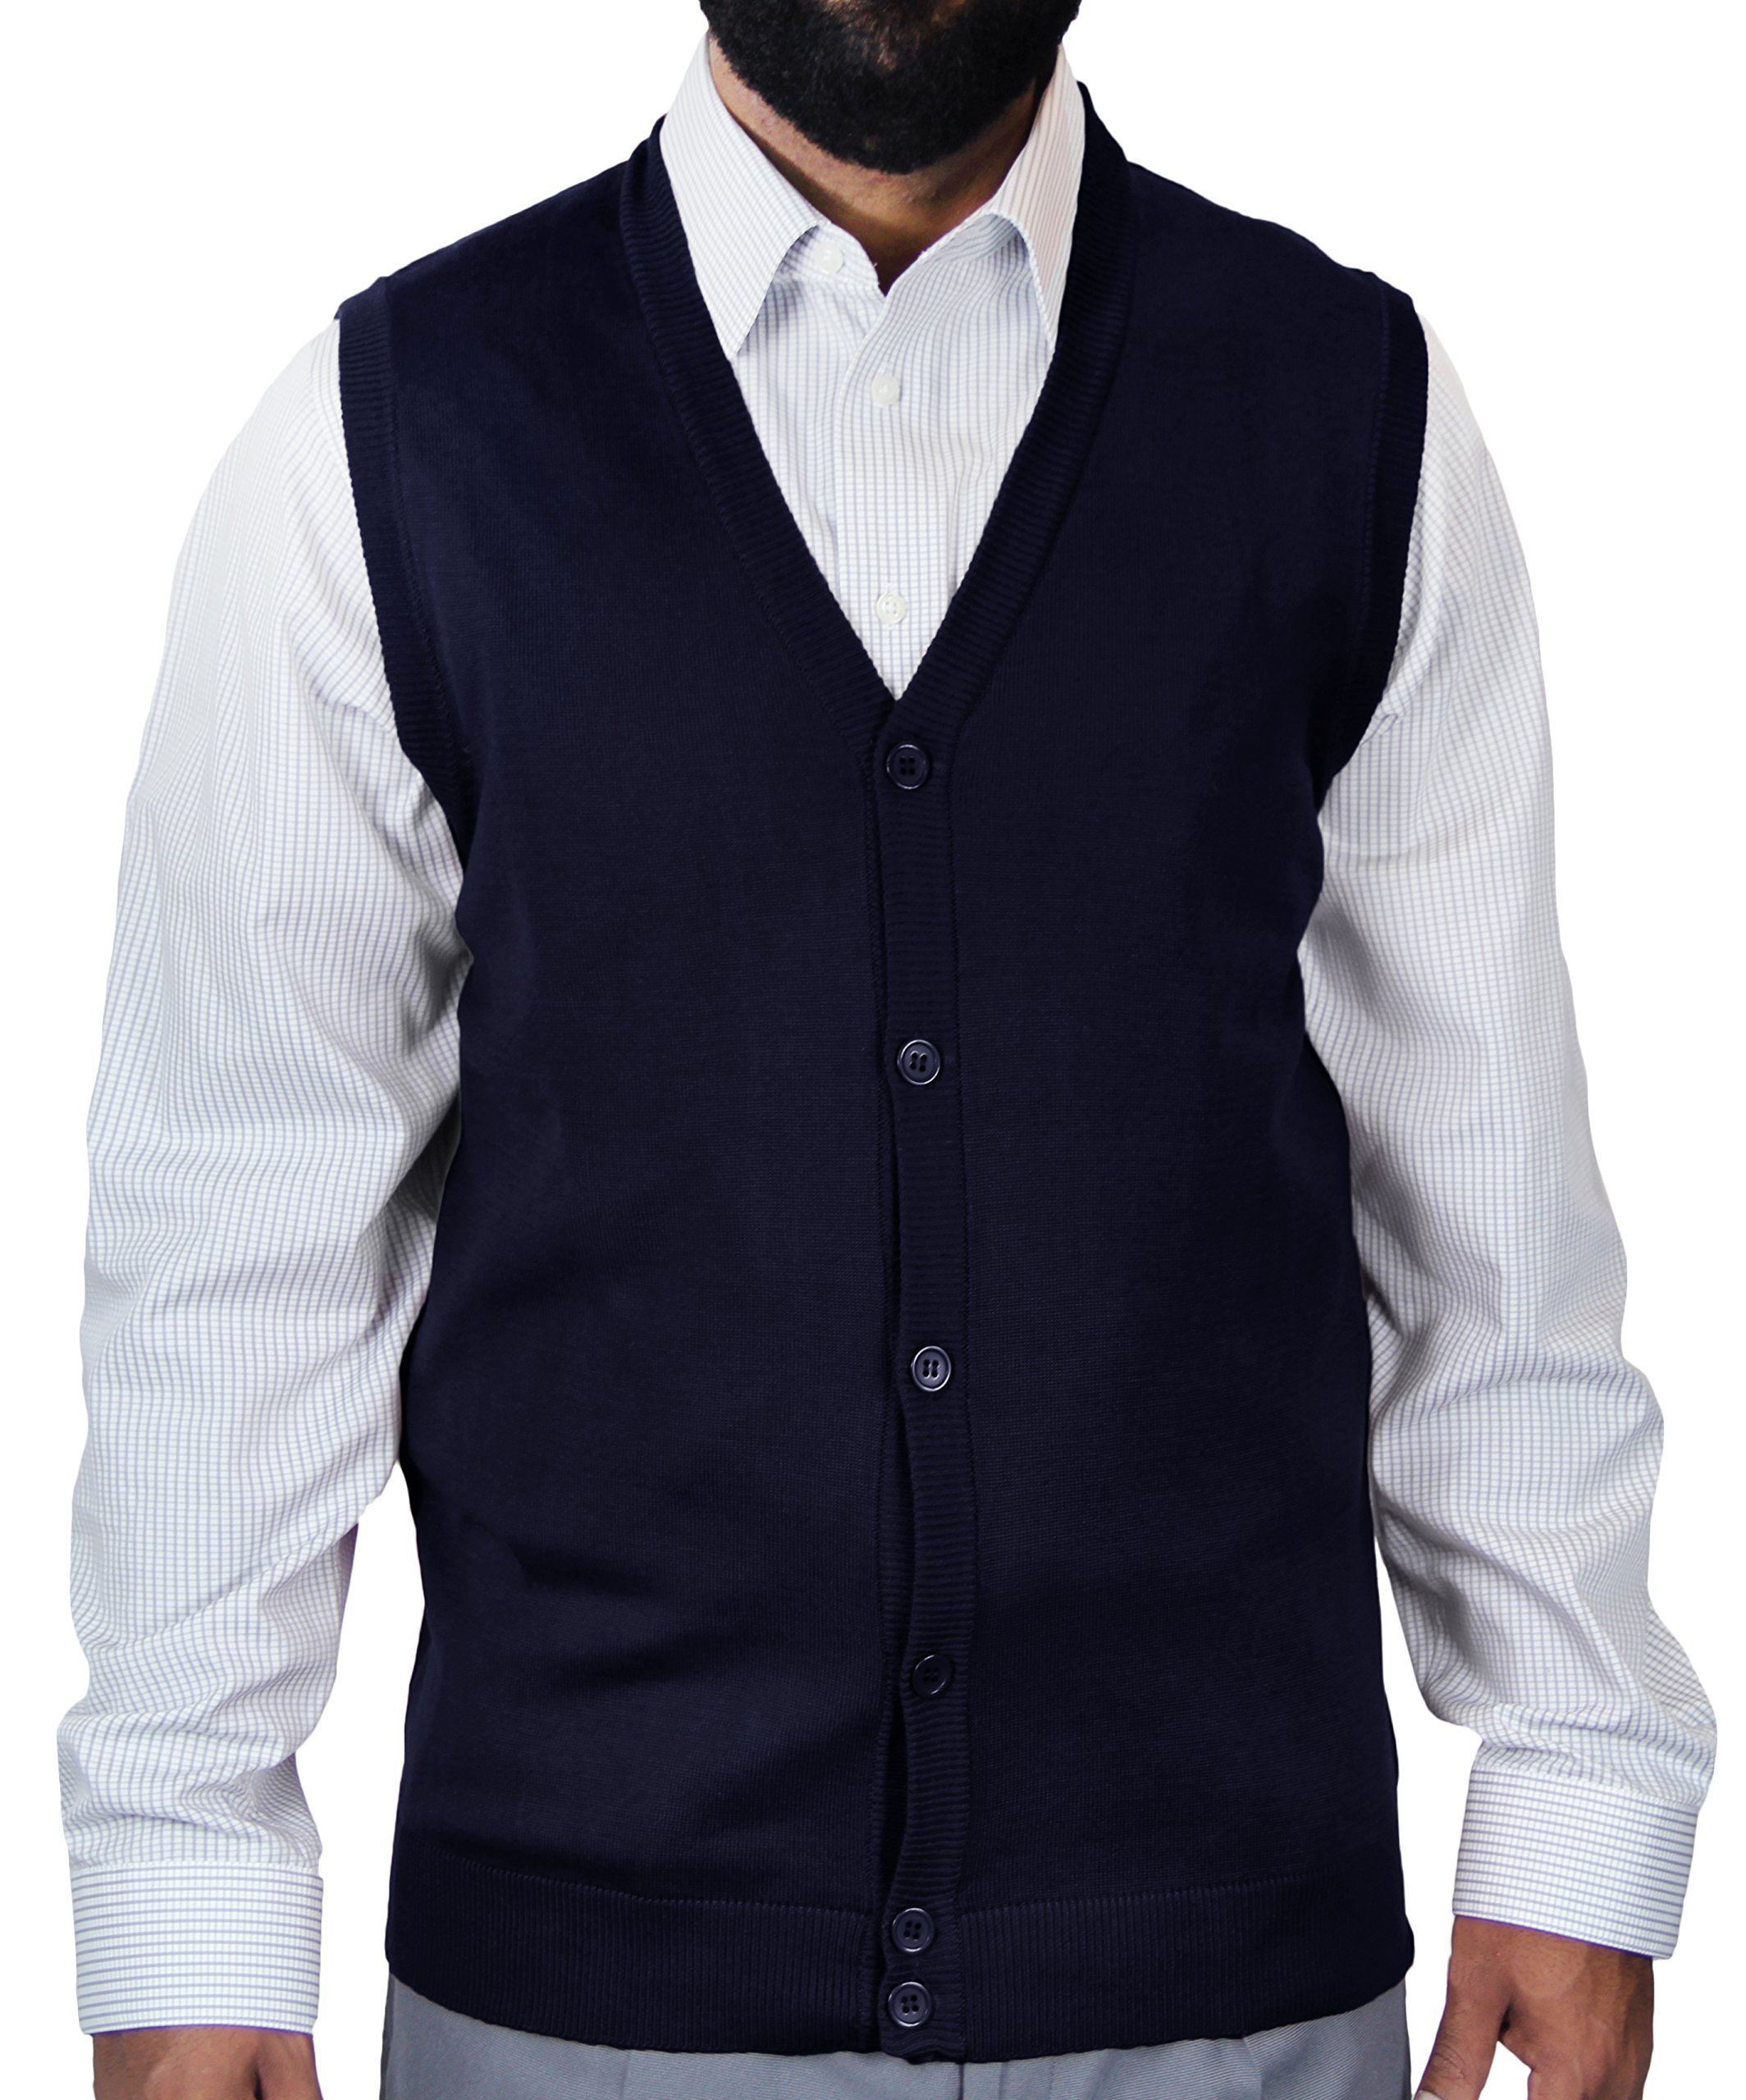 Blue Ocean Big and Tall Solid Color Cardigan Sweater Vest-6X-Large